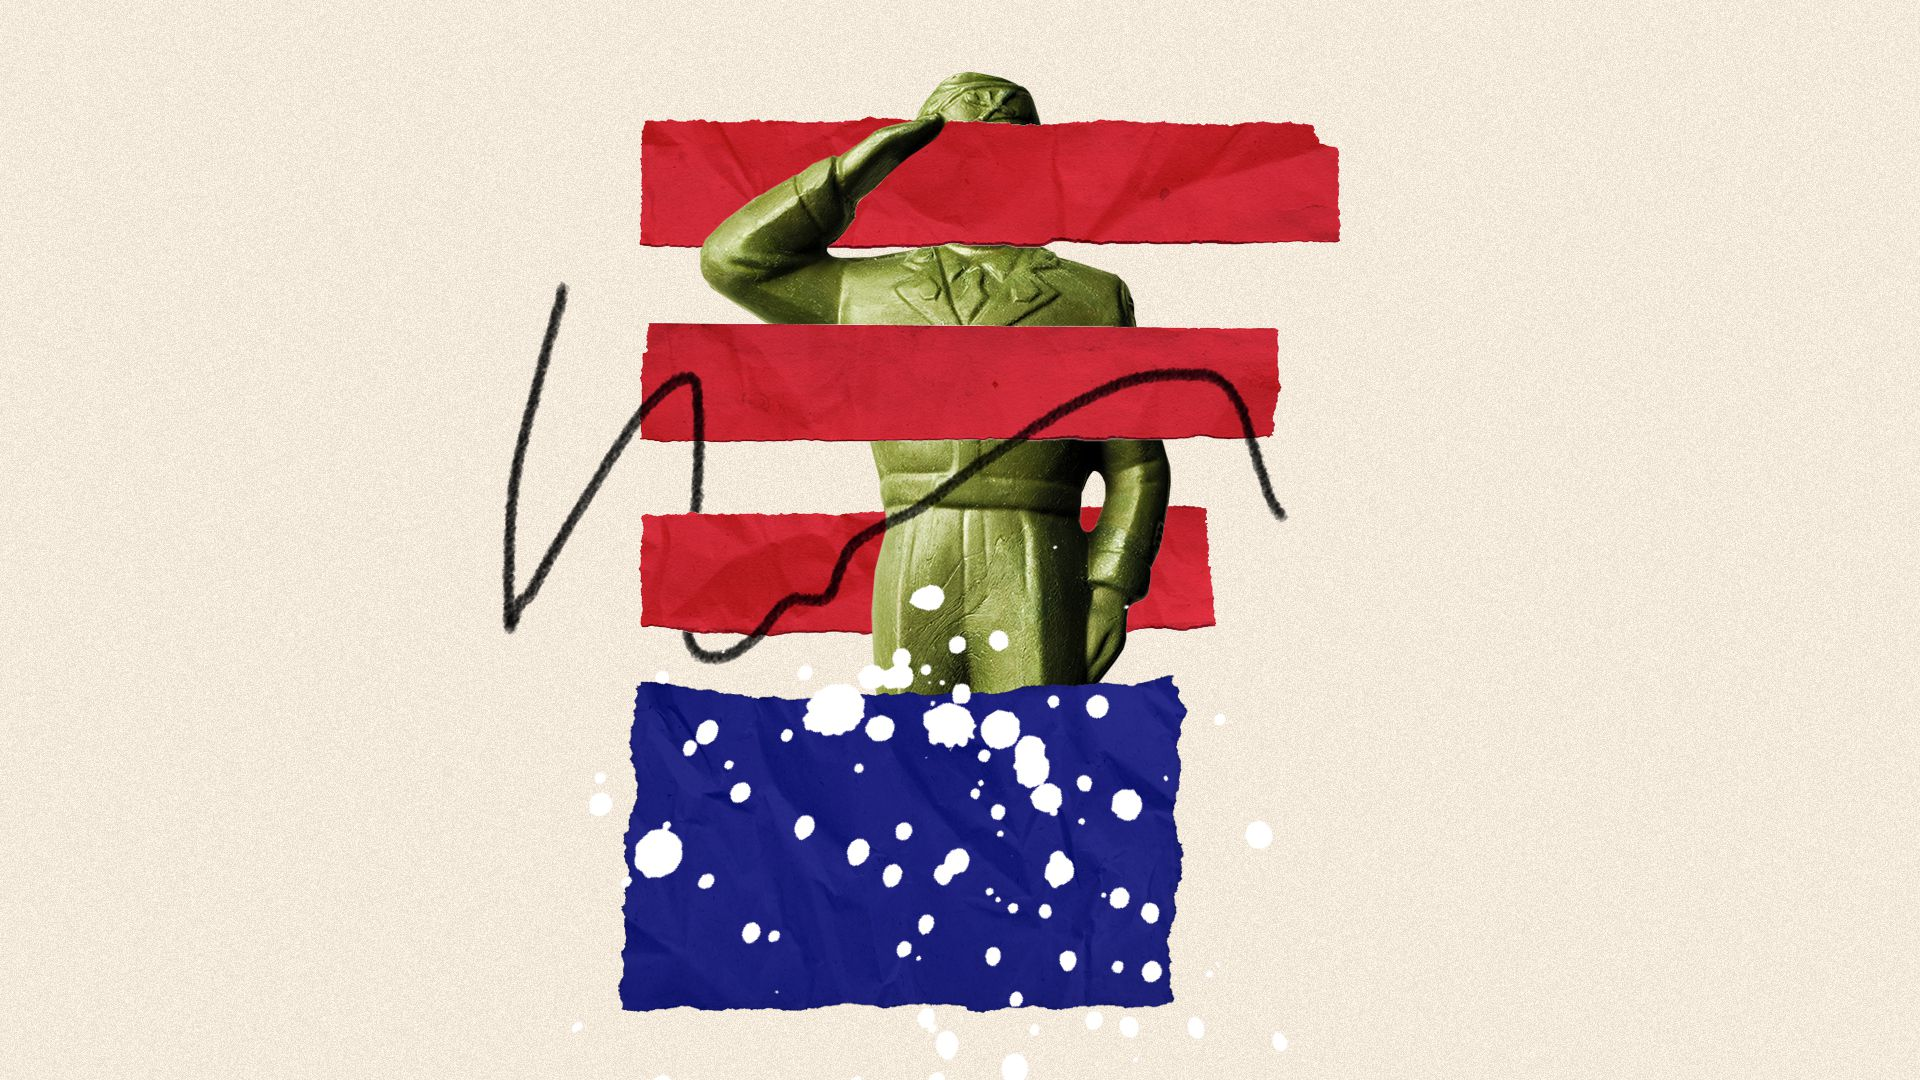 Illustrated collage of a deconstructed American flag and a saluting toy soldier.